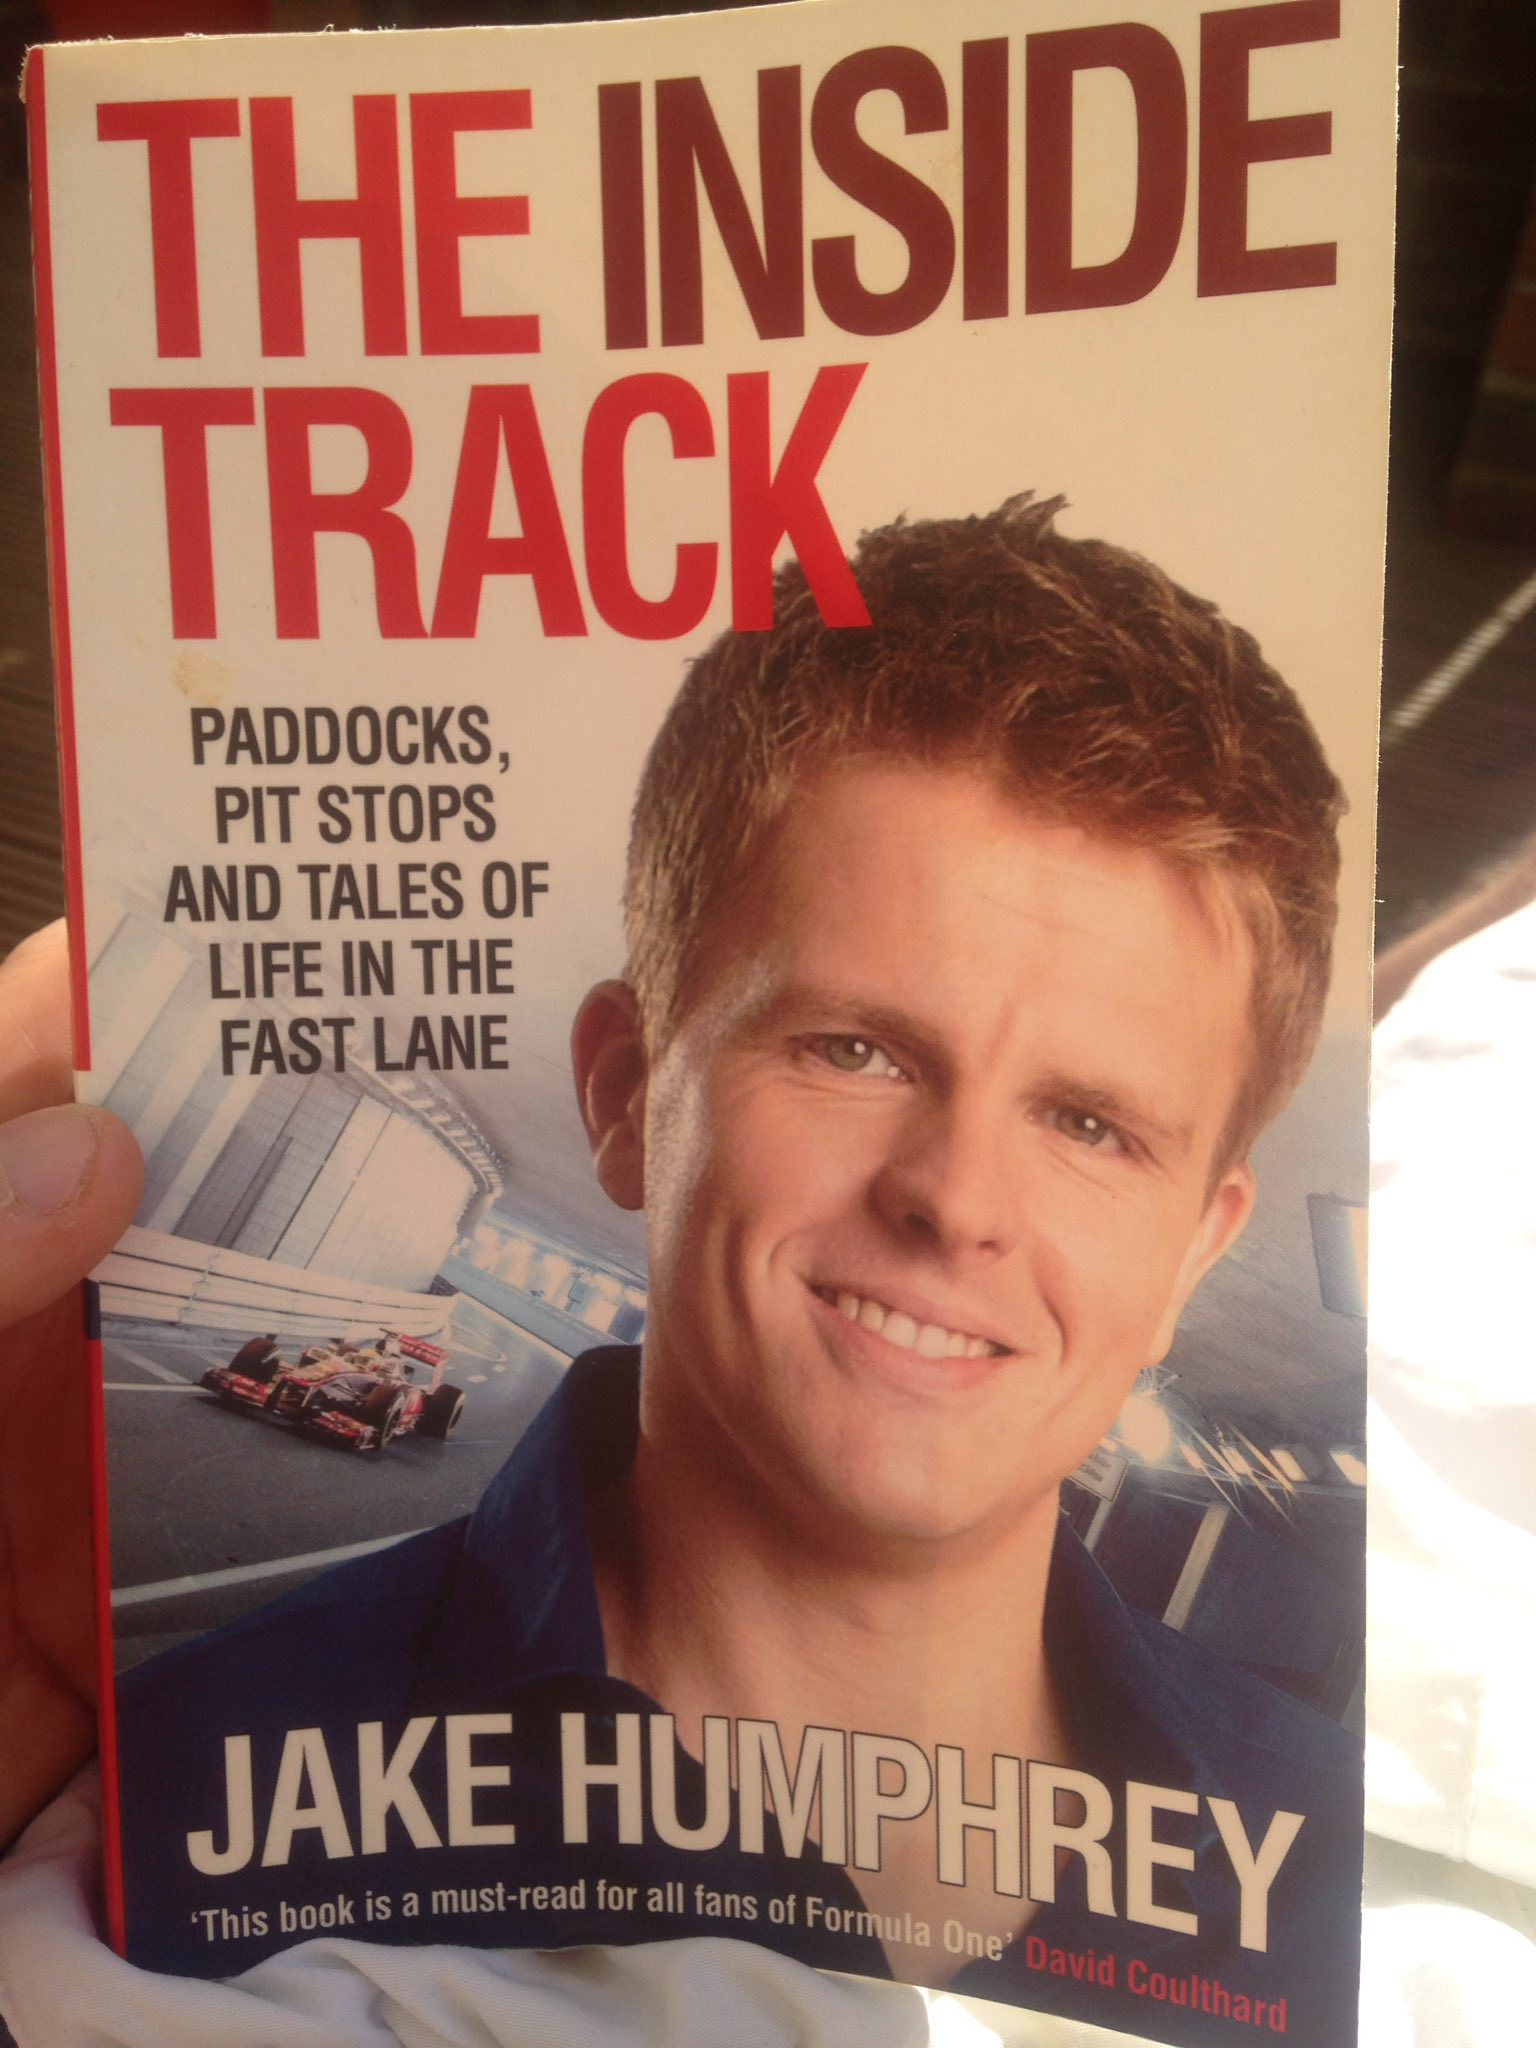 RT @winchy33: Just re-reading this classic @mrjakehumphrey 👍 https://t.co/FEijdT8gxG